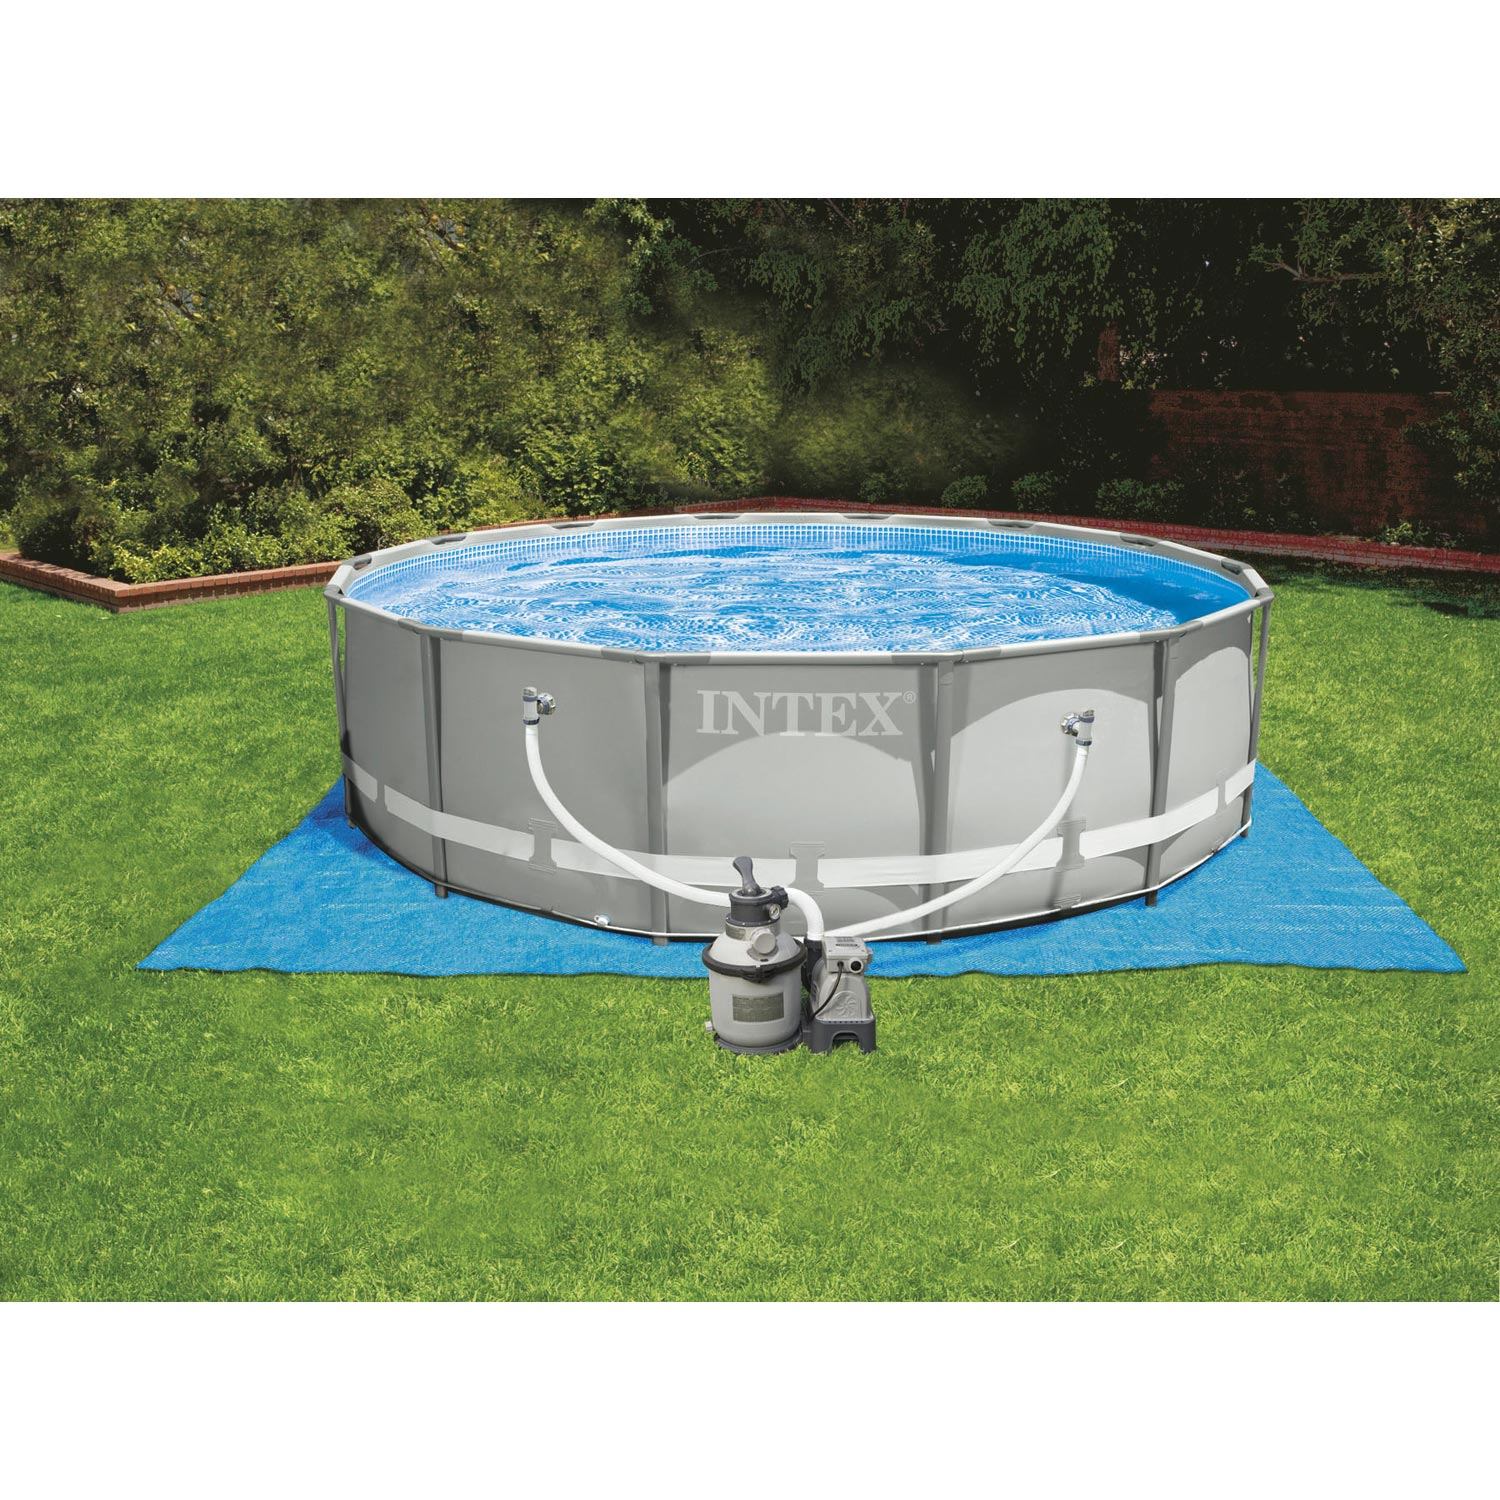 Piscine hors sol autoportante tubulaire ultra frame intex for Pompe piscine hors sol leroy merlin